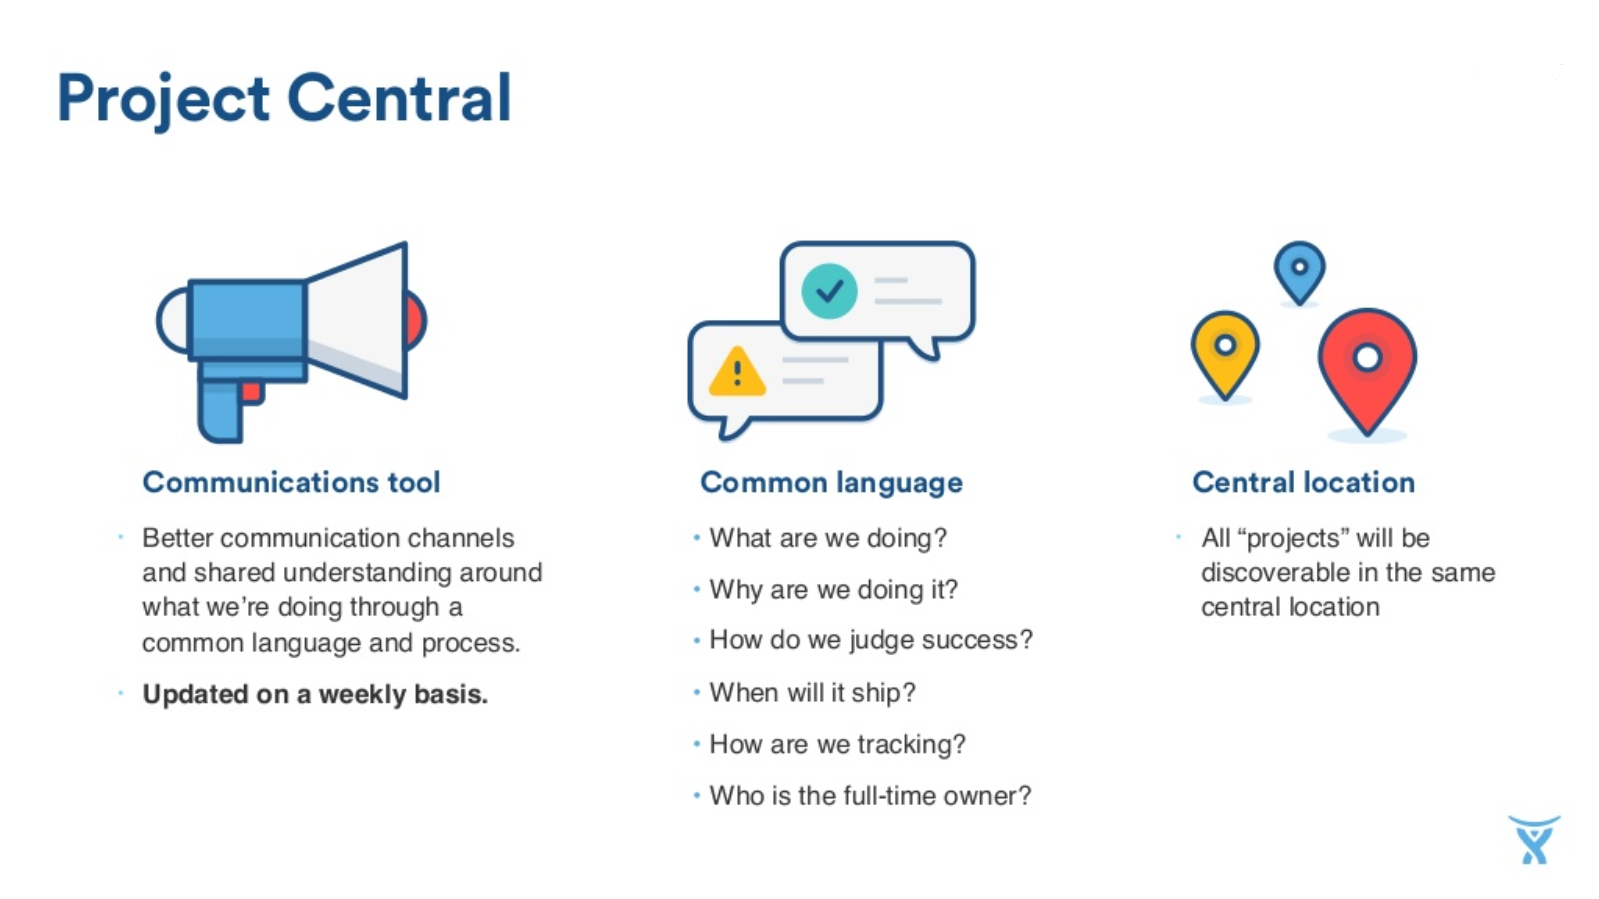 Atlassian's project central allows better communication